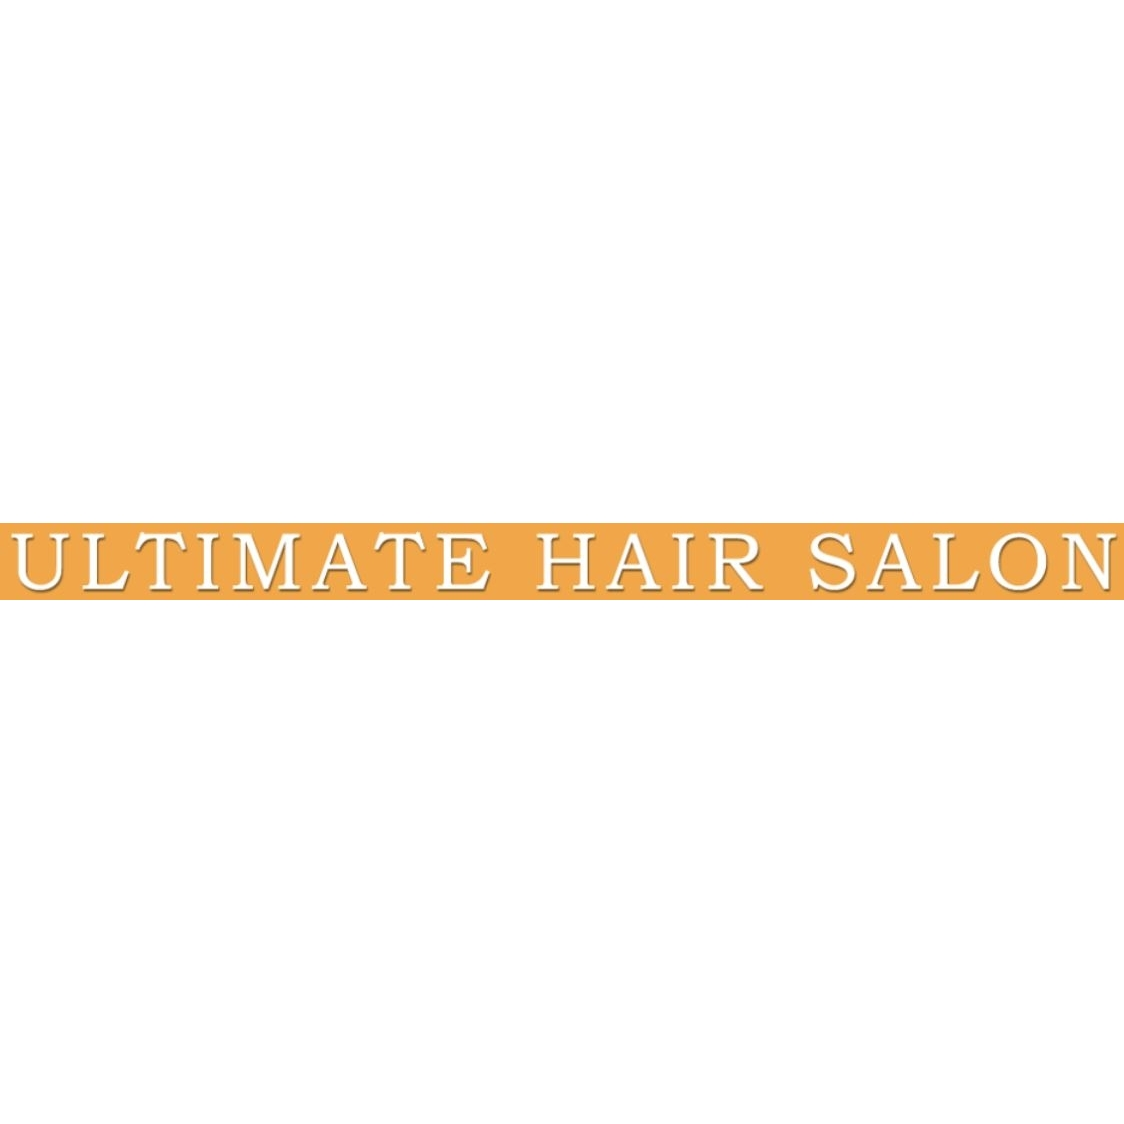 Ultimate Hair Salon